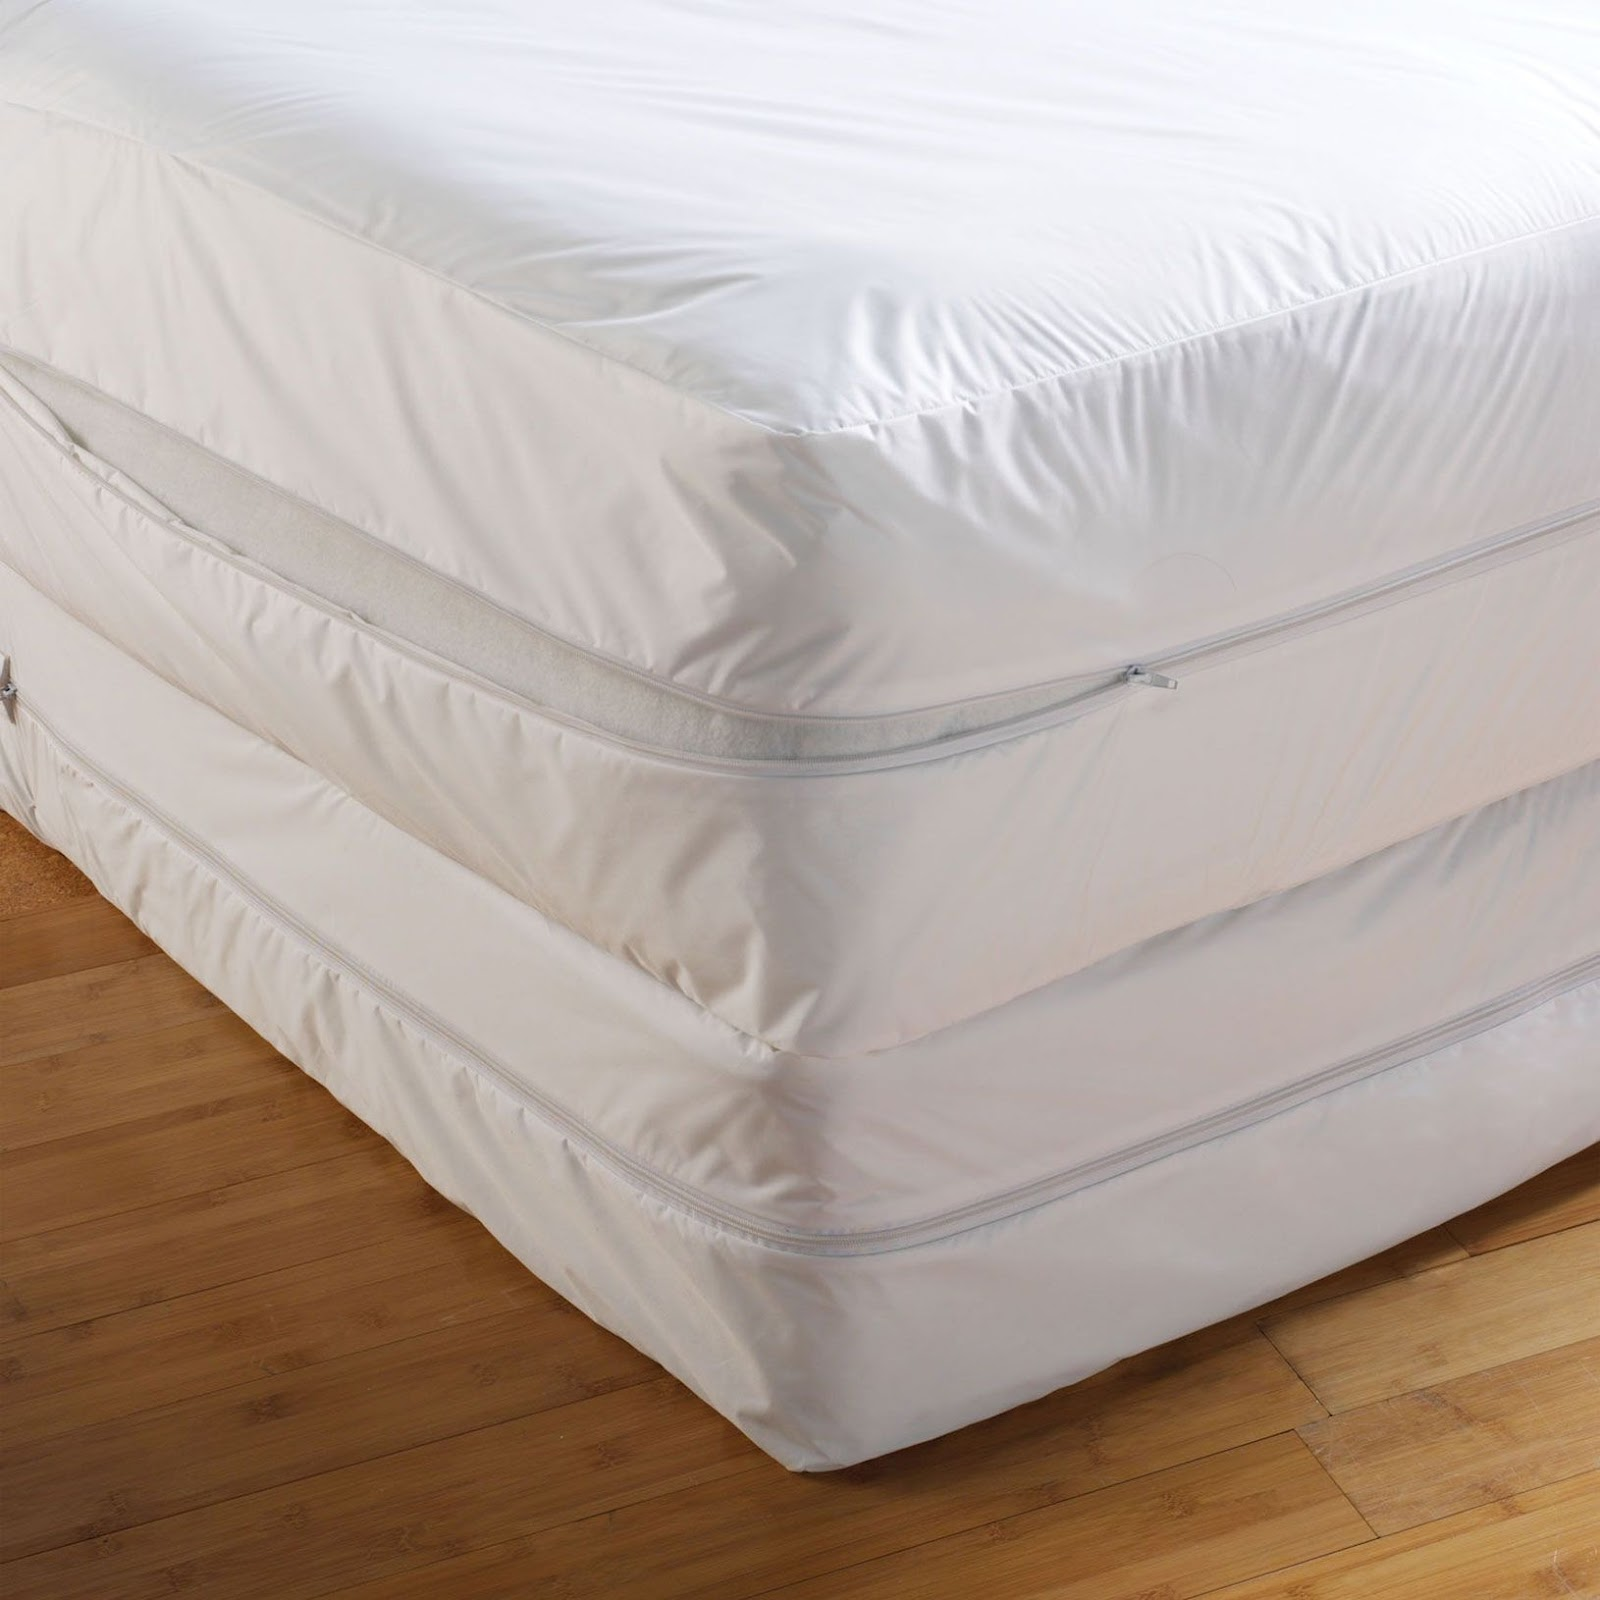 Bed bug mattress cover is the best defense for preventing for How to cover a bed